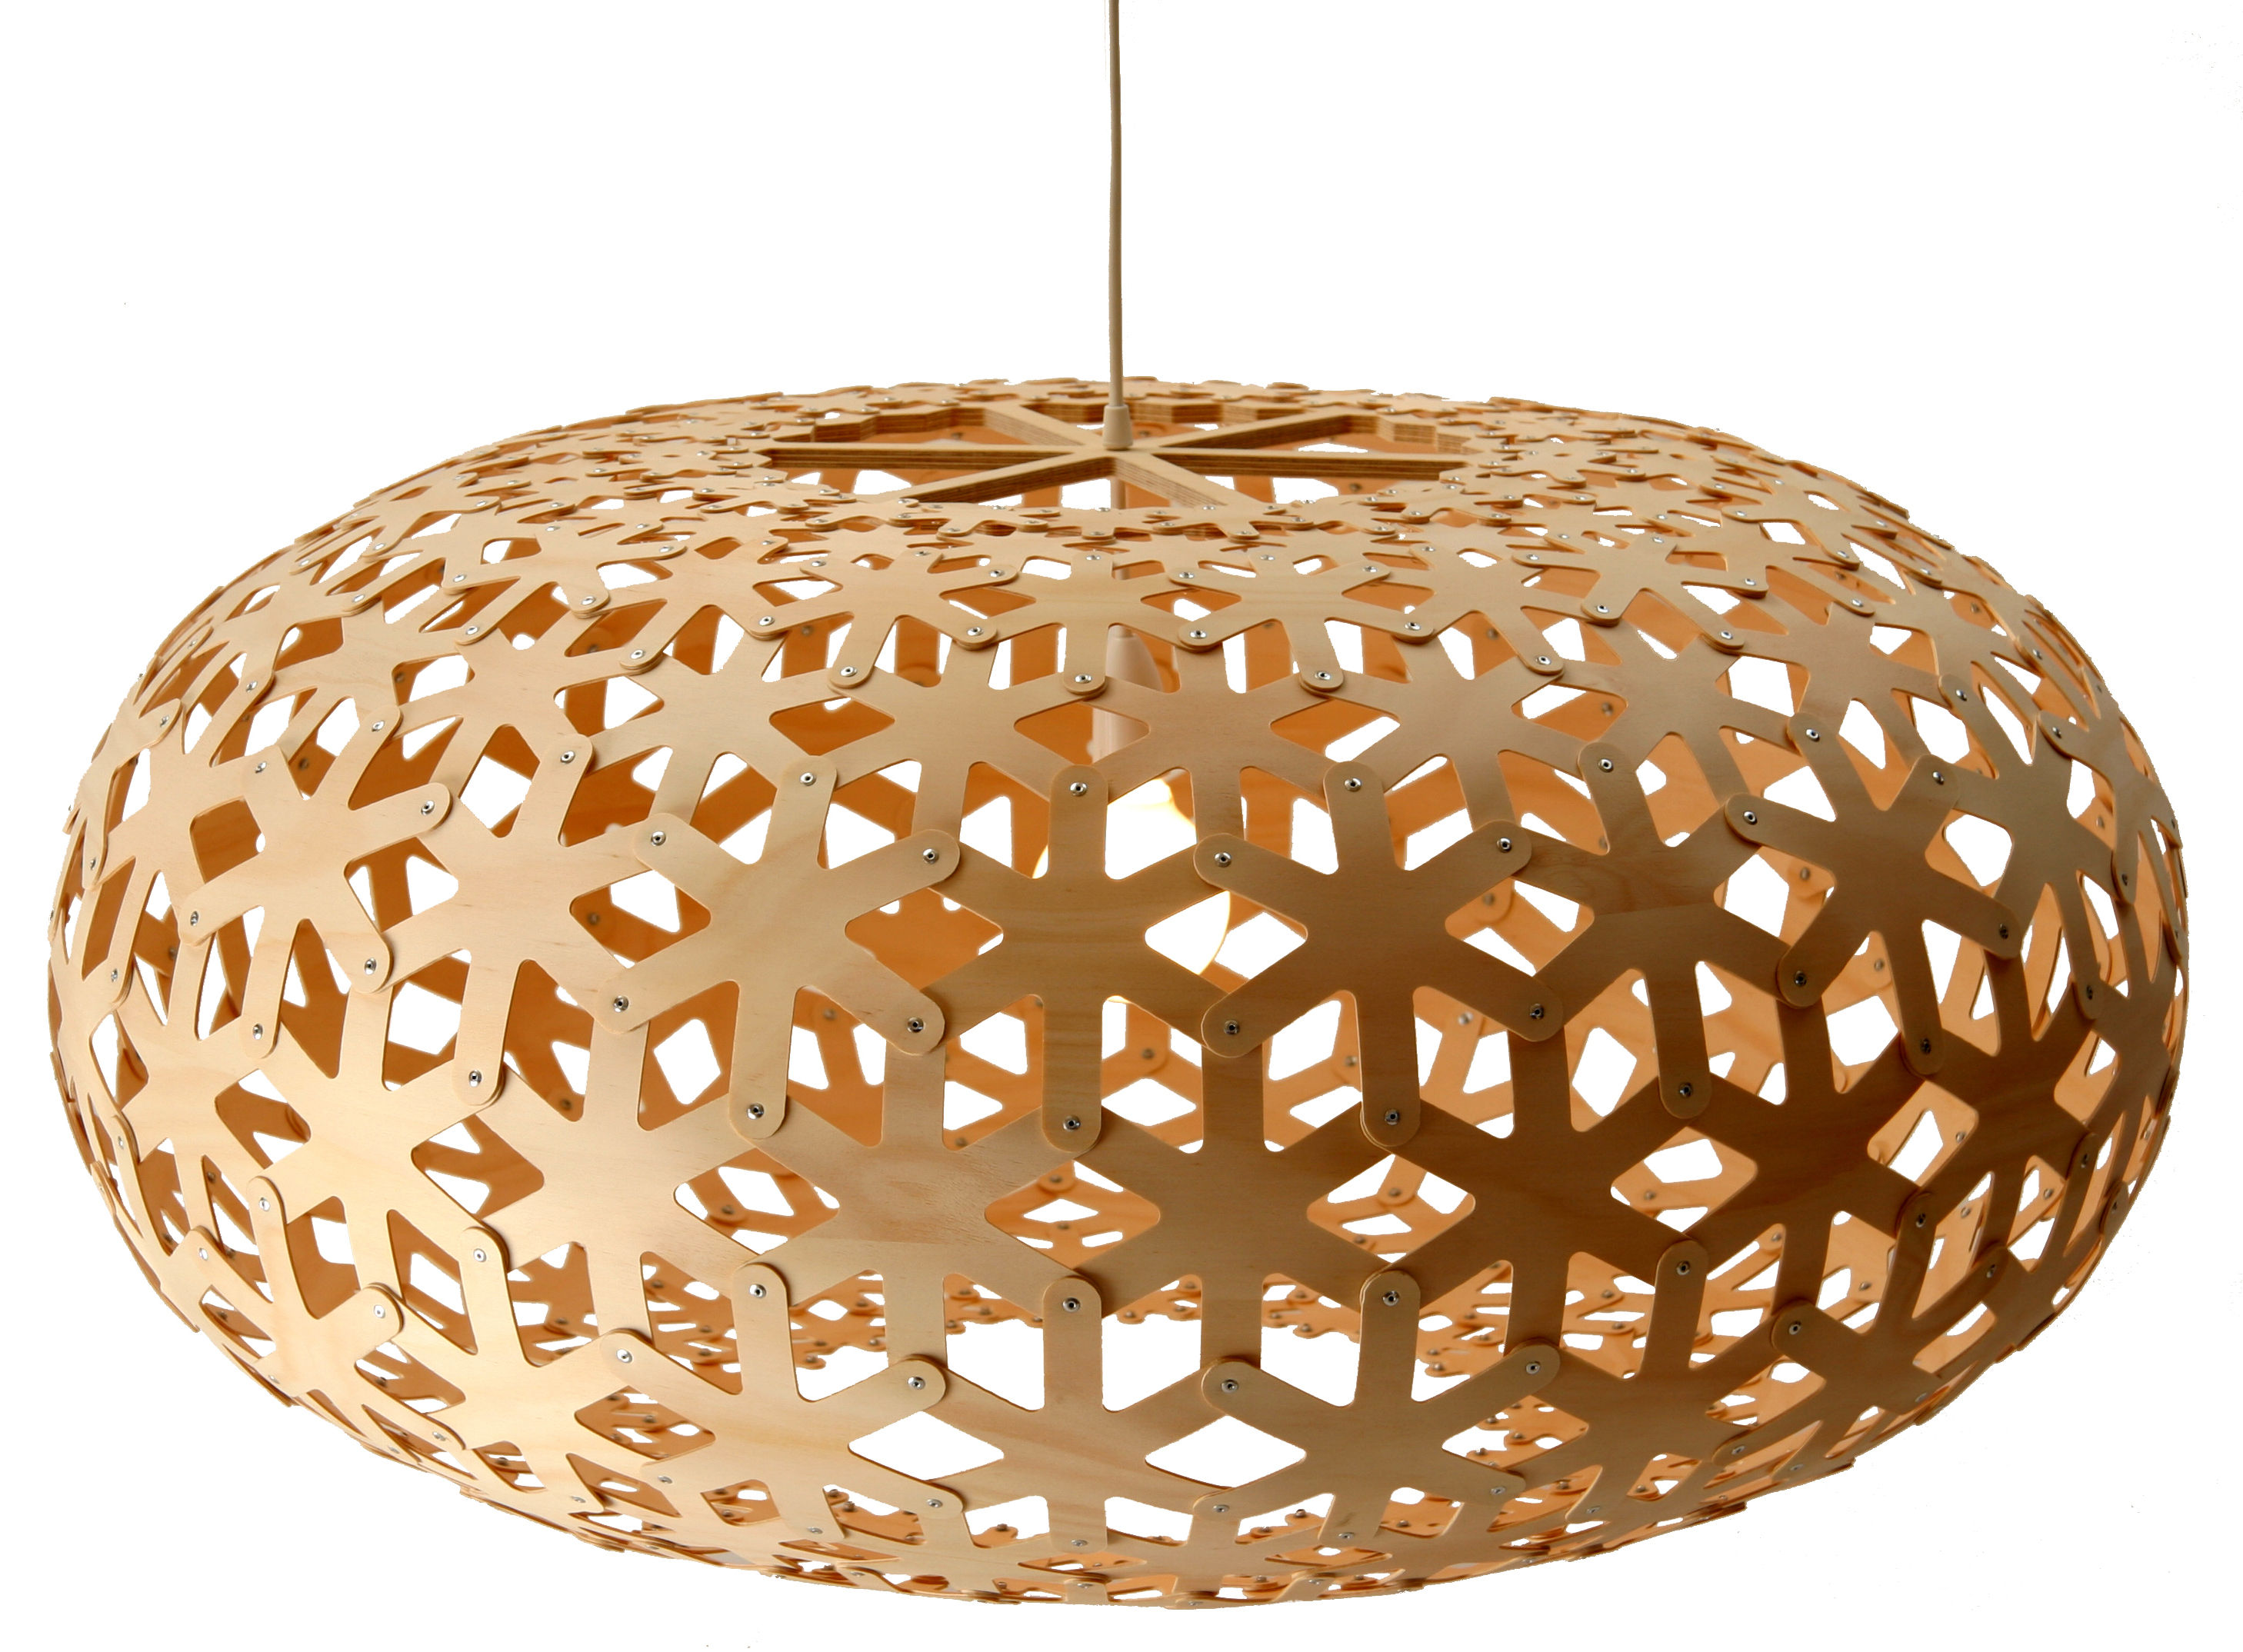 Plafonnier Bois Naturel Suspension Snowflake Ø 100 Cm David Trubridge